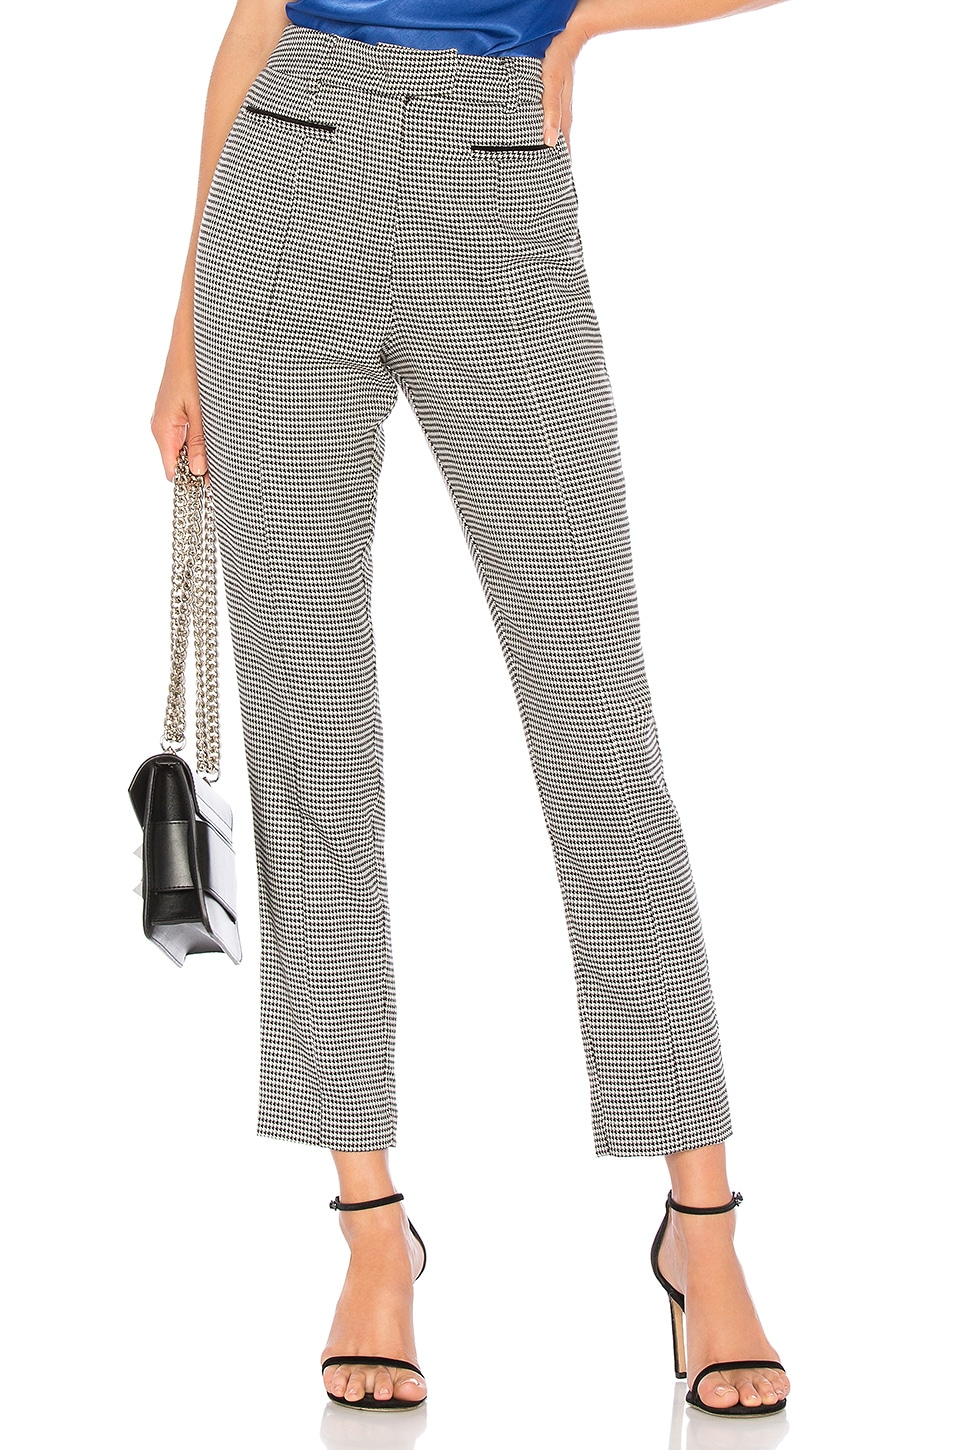 L'Academie The Alessia Pant in Black Houndstooth